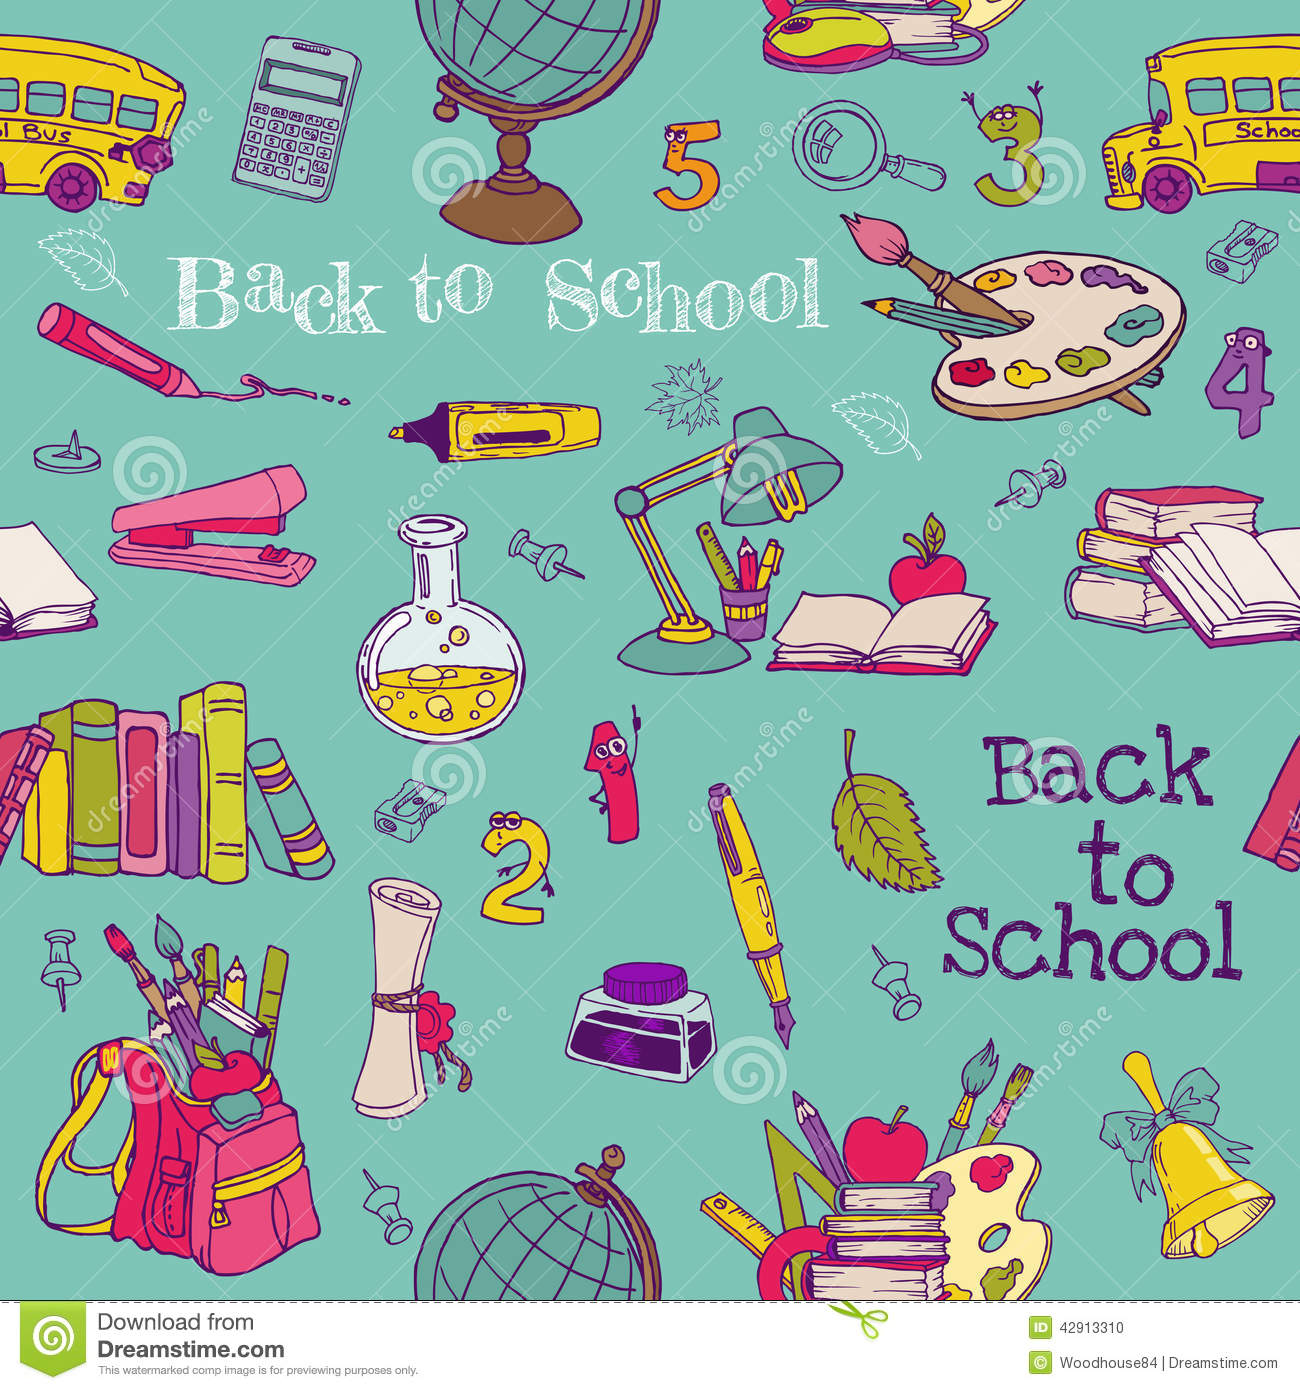 back to school background - photo #33